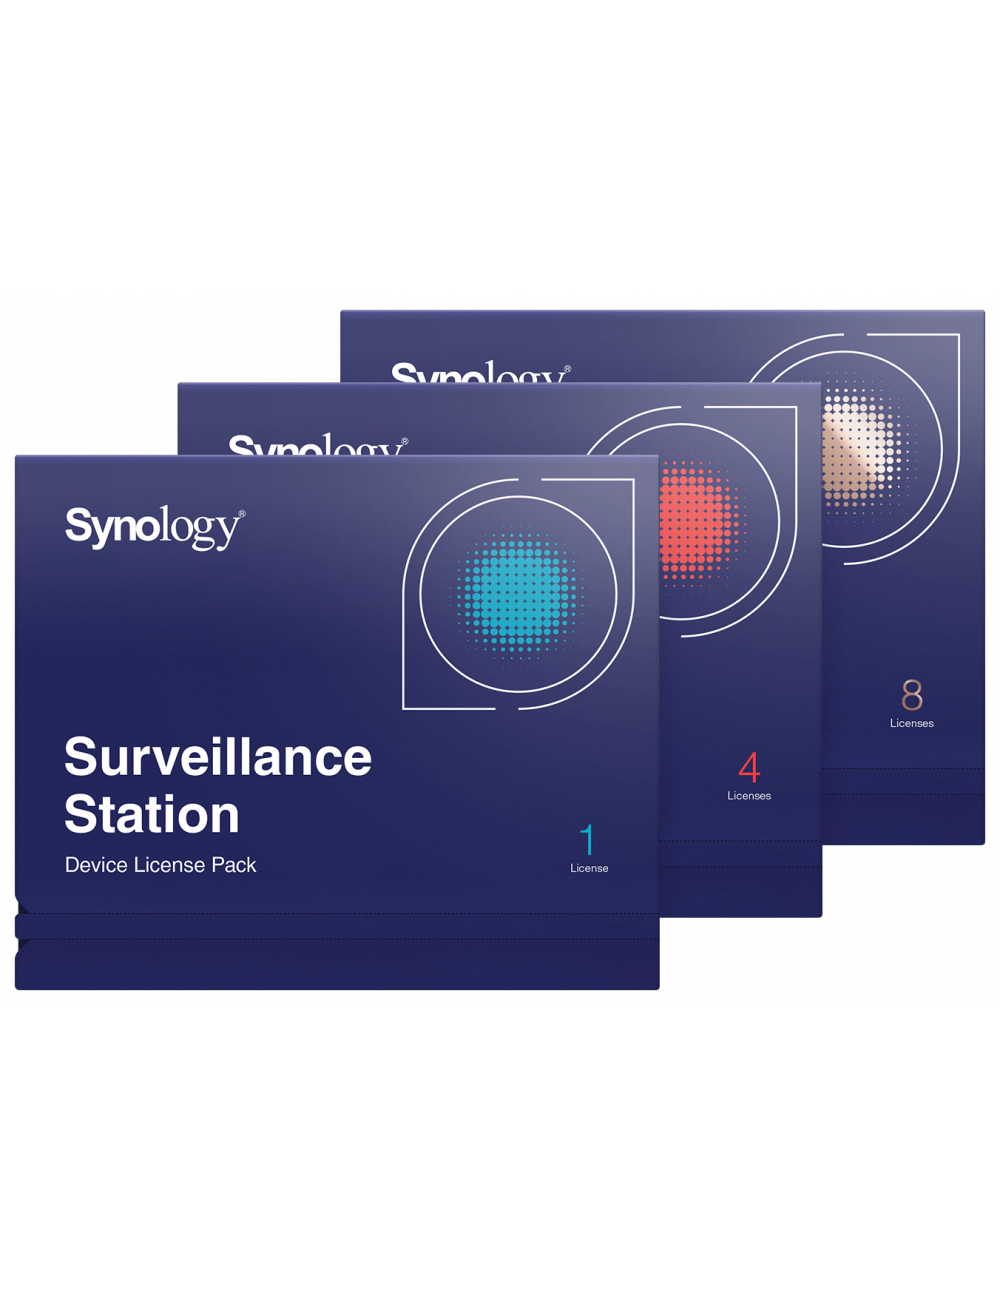 Pack 8 licenses for additional camera on Synology monitoring station